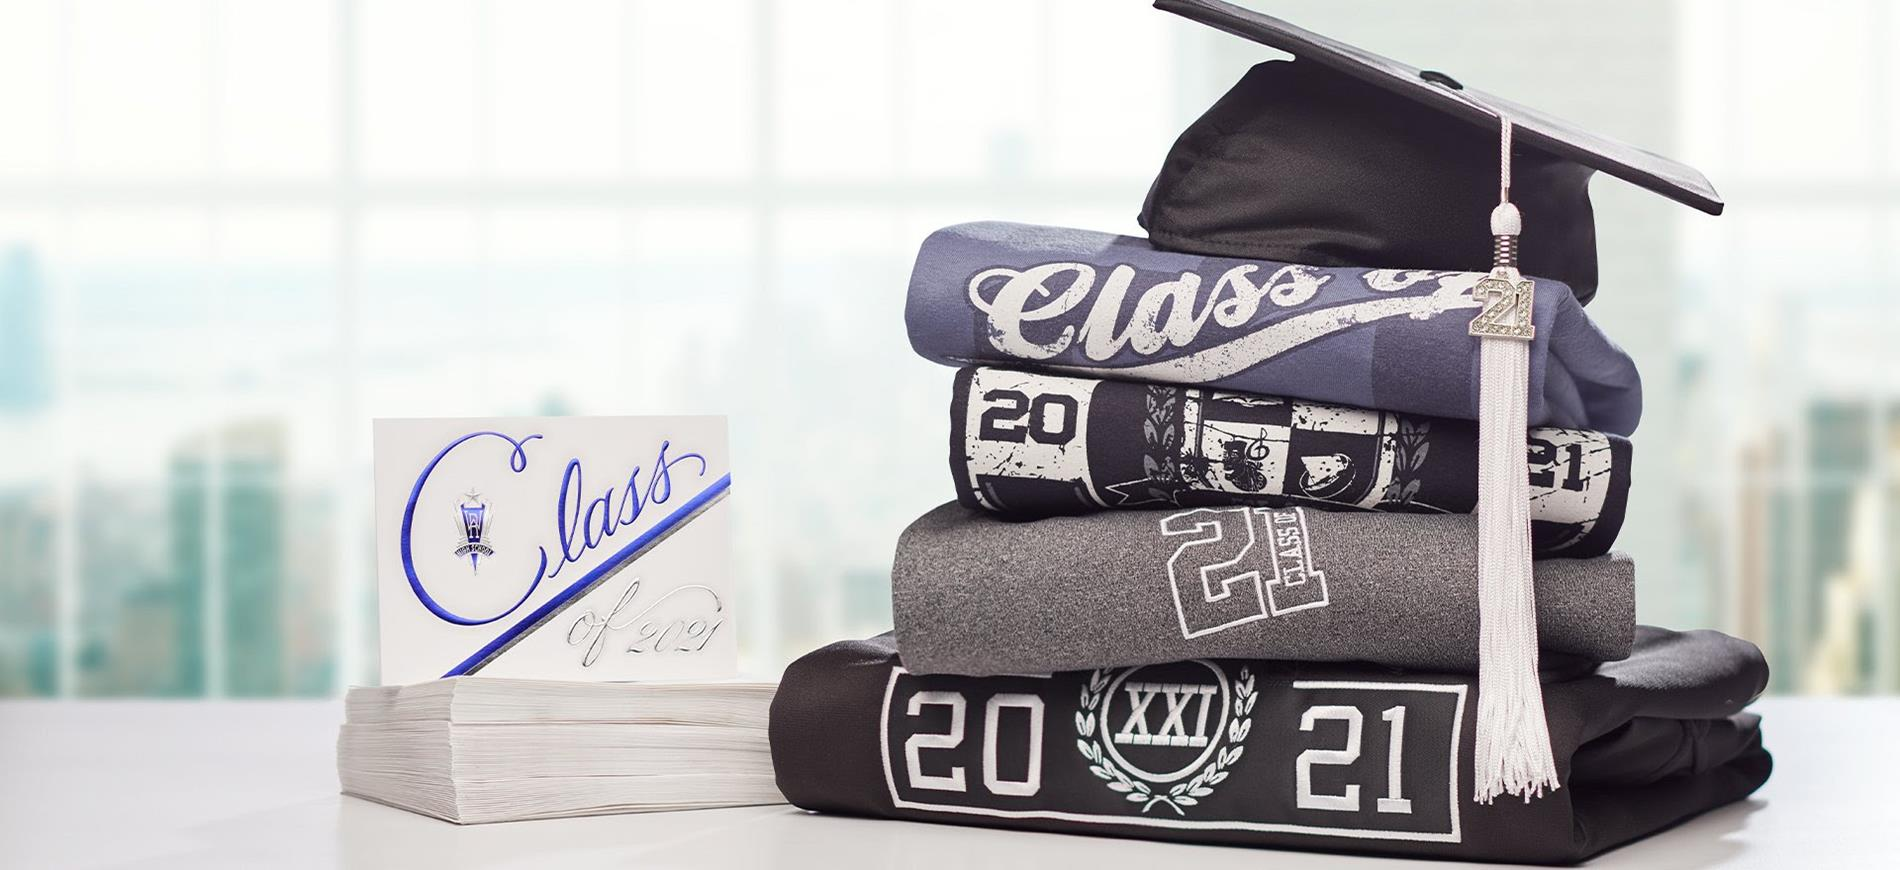 Cap and Gown Order Link